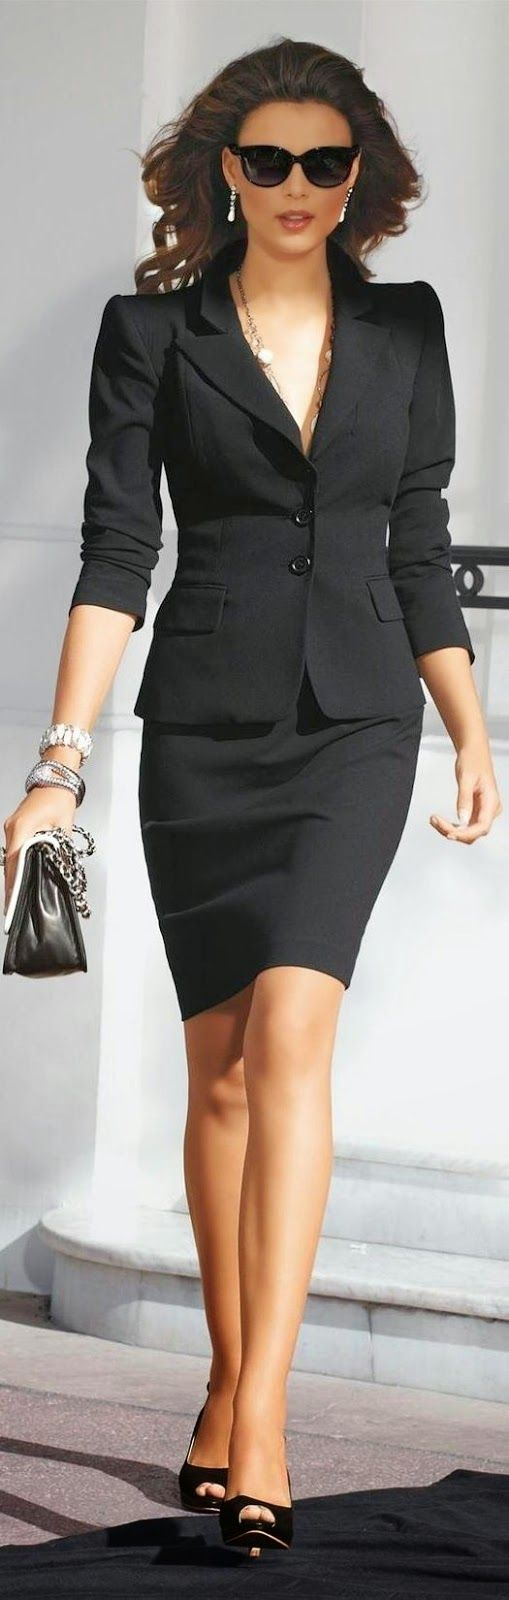 top ideas about dress for success women for 100 fashionable work outfits for women